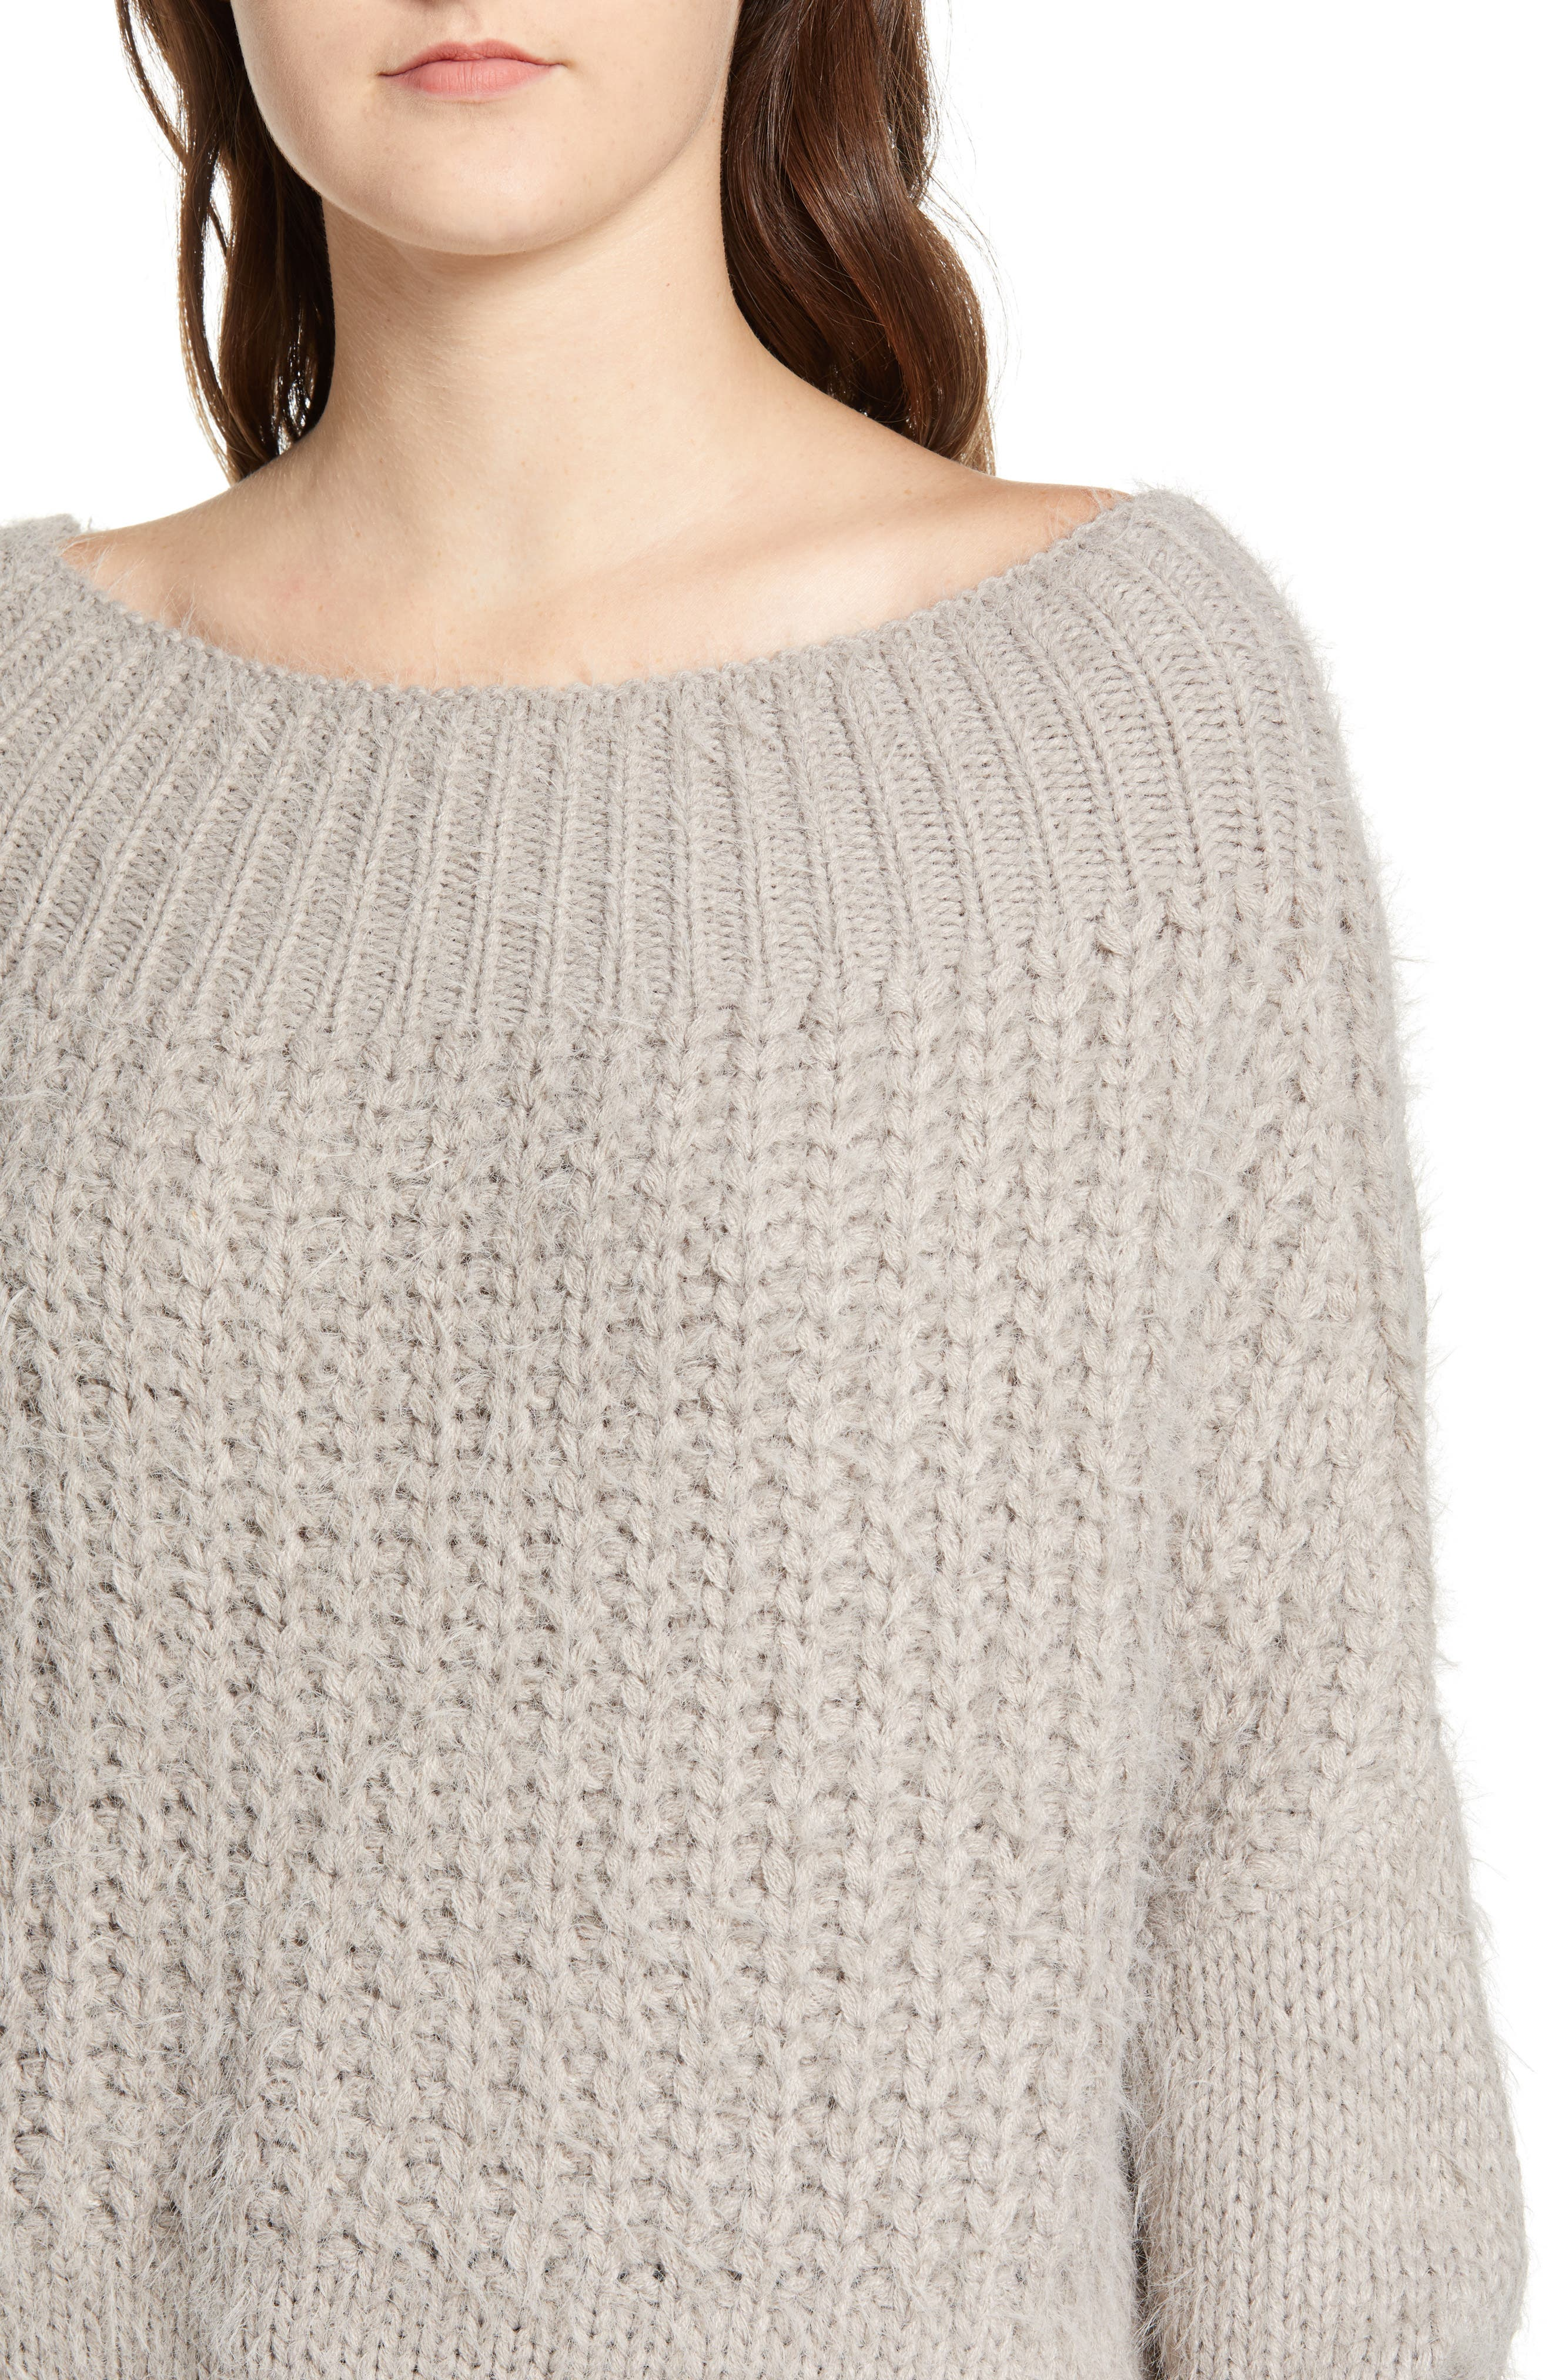 DREAMERS BY DEBUT,                             Boatneck Knit Pullover,                             Alternate thumbnail 4, color,                             MICRO GREY